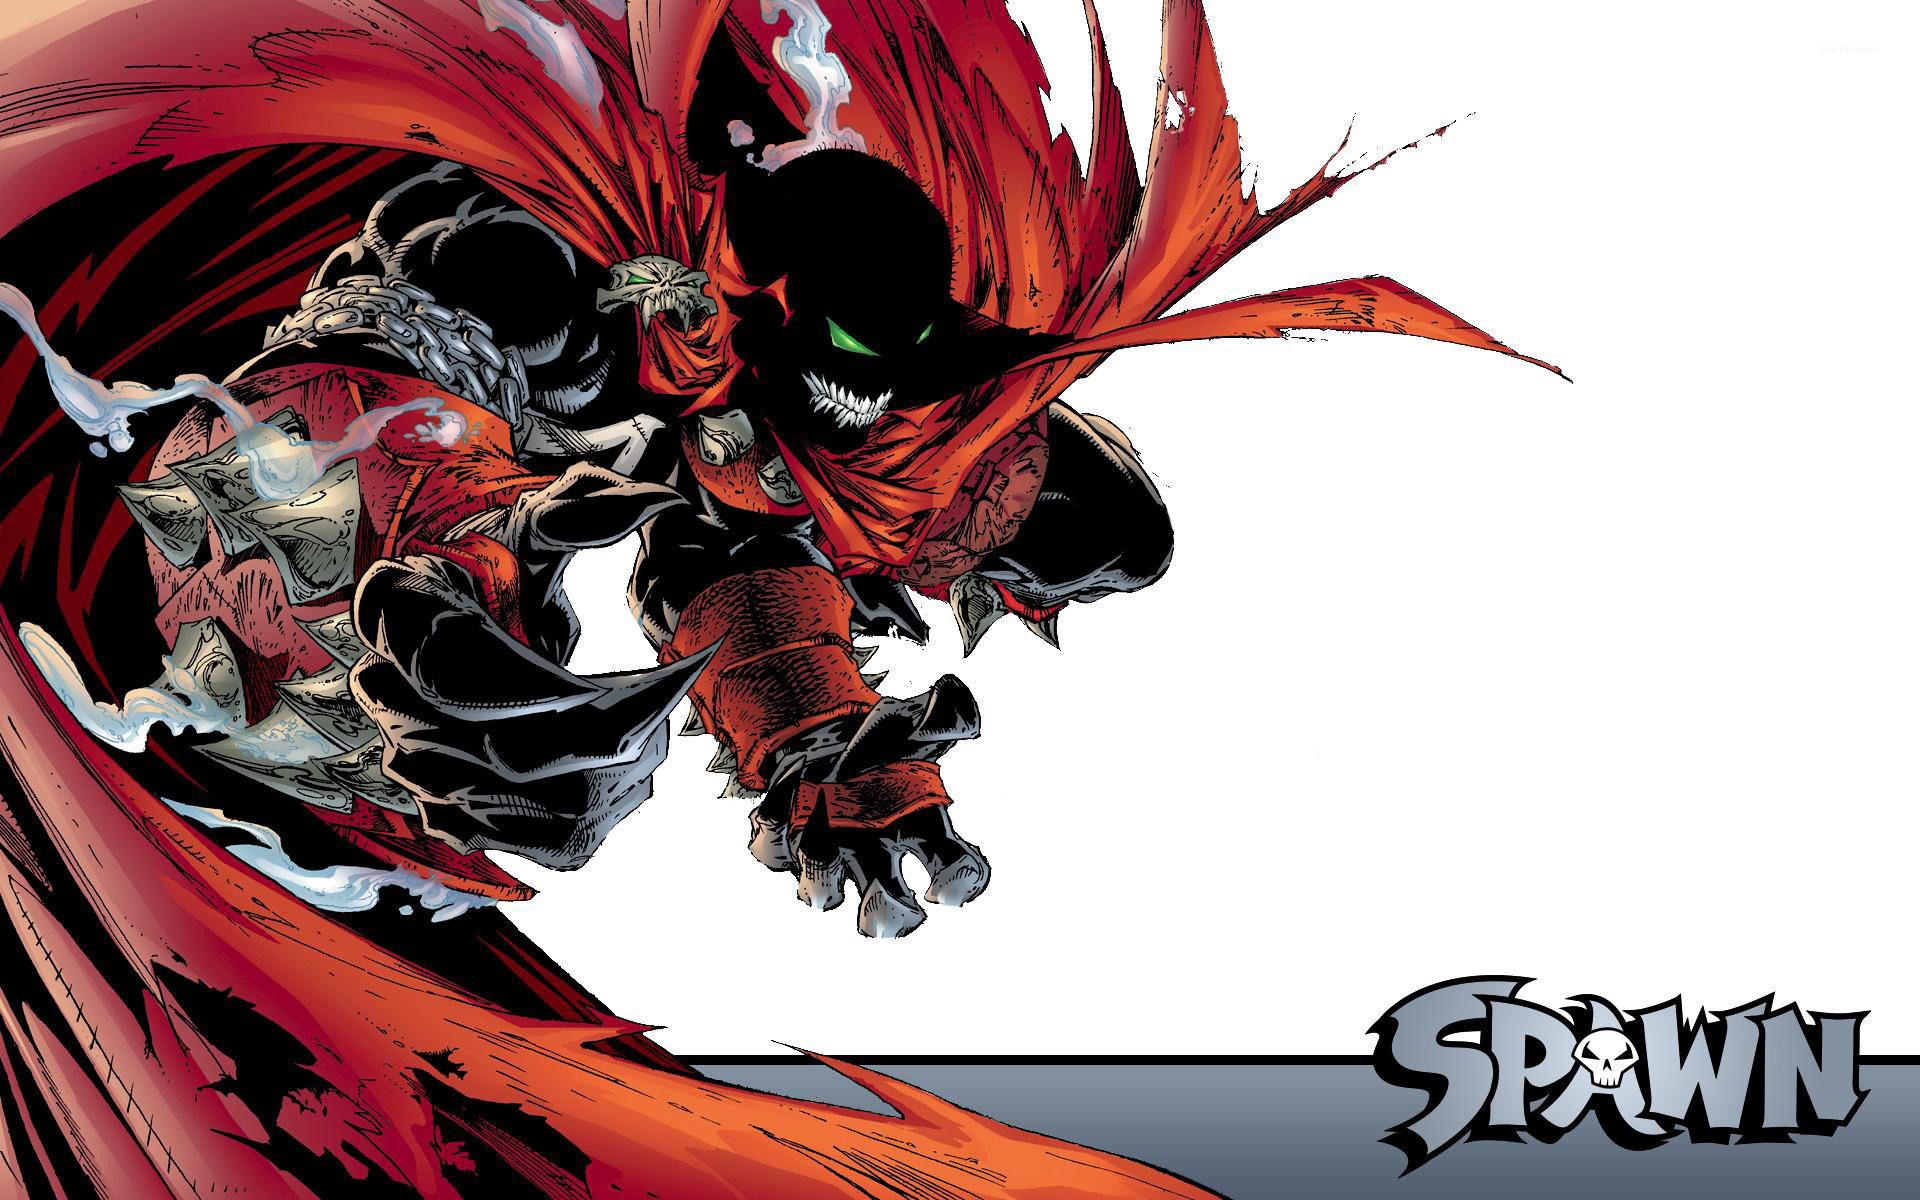 spawn wallpapers 1920x1080 - photo #39